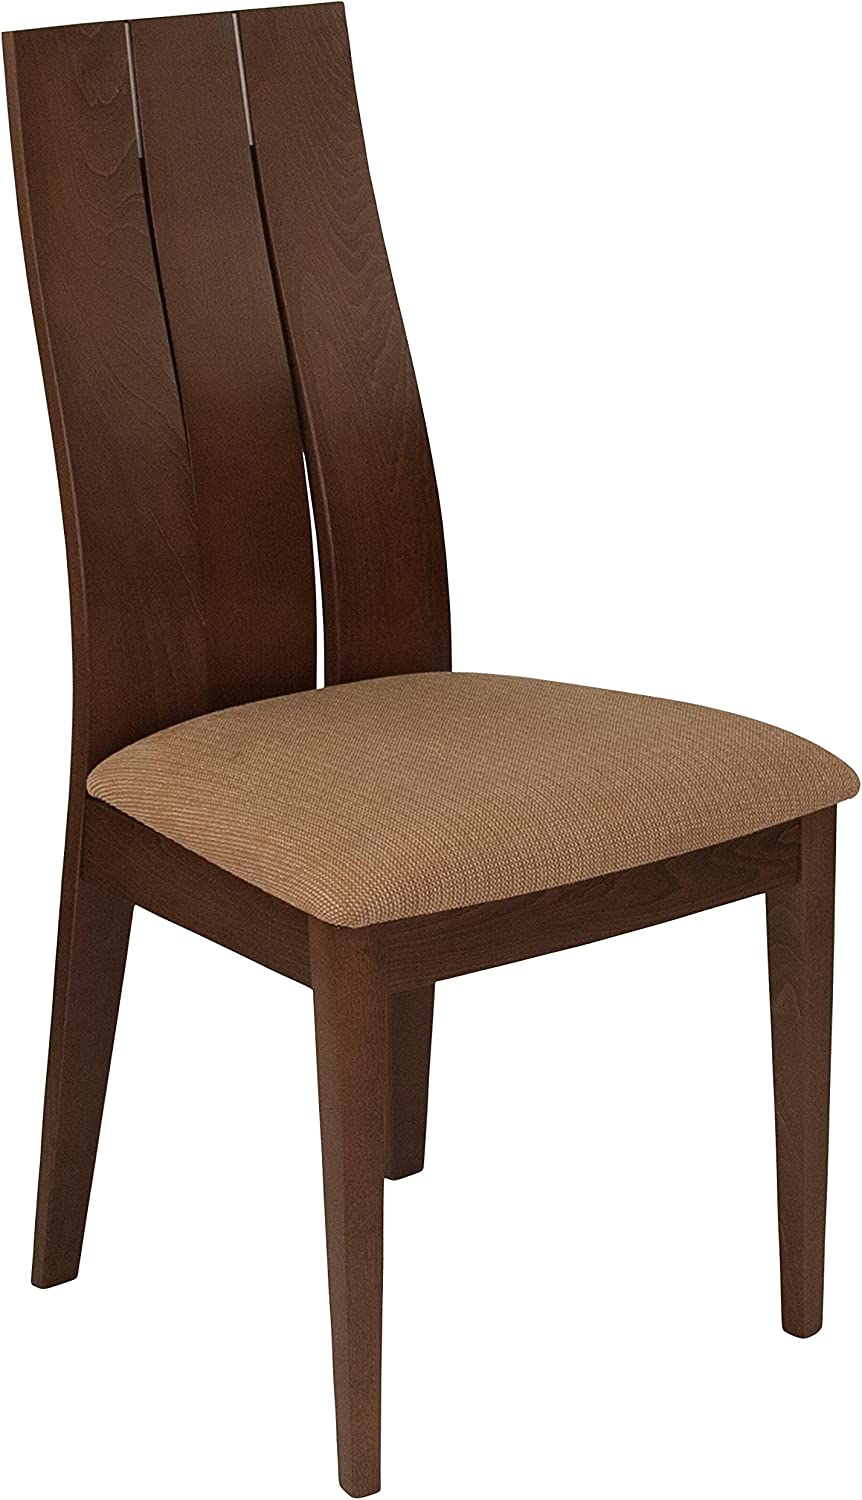 Flash Furniture Hadley Walnut Finish Wood Dining Chair with Wide Slat Back & Brown Fabric Seat